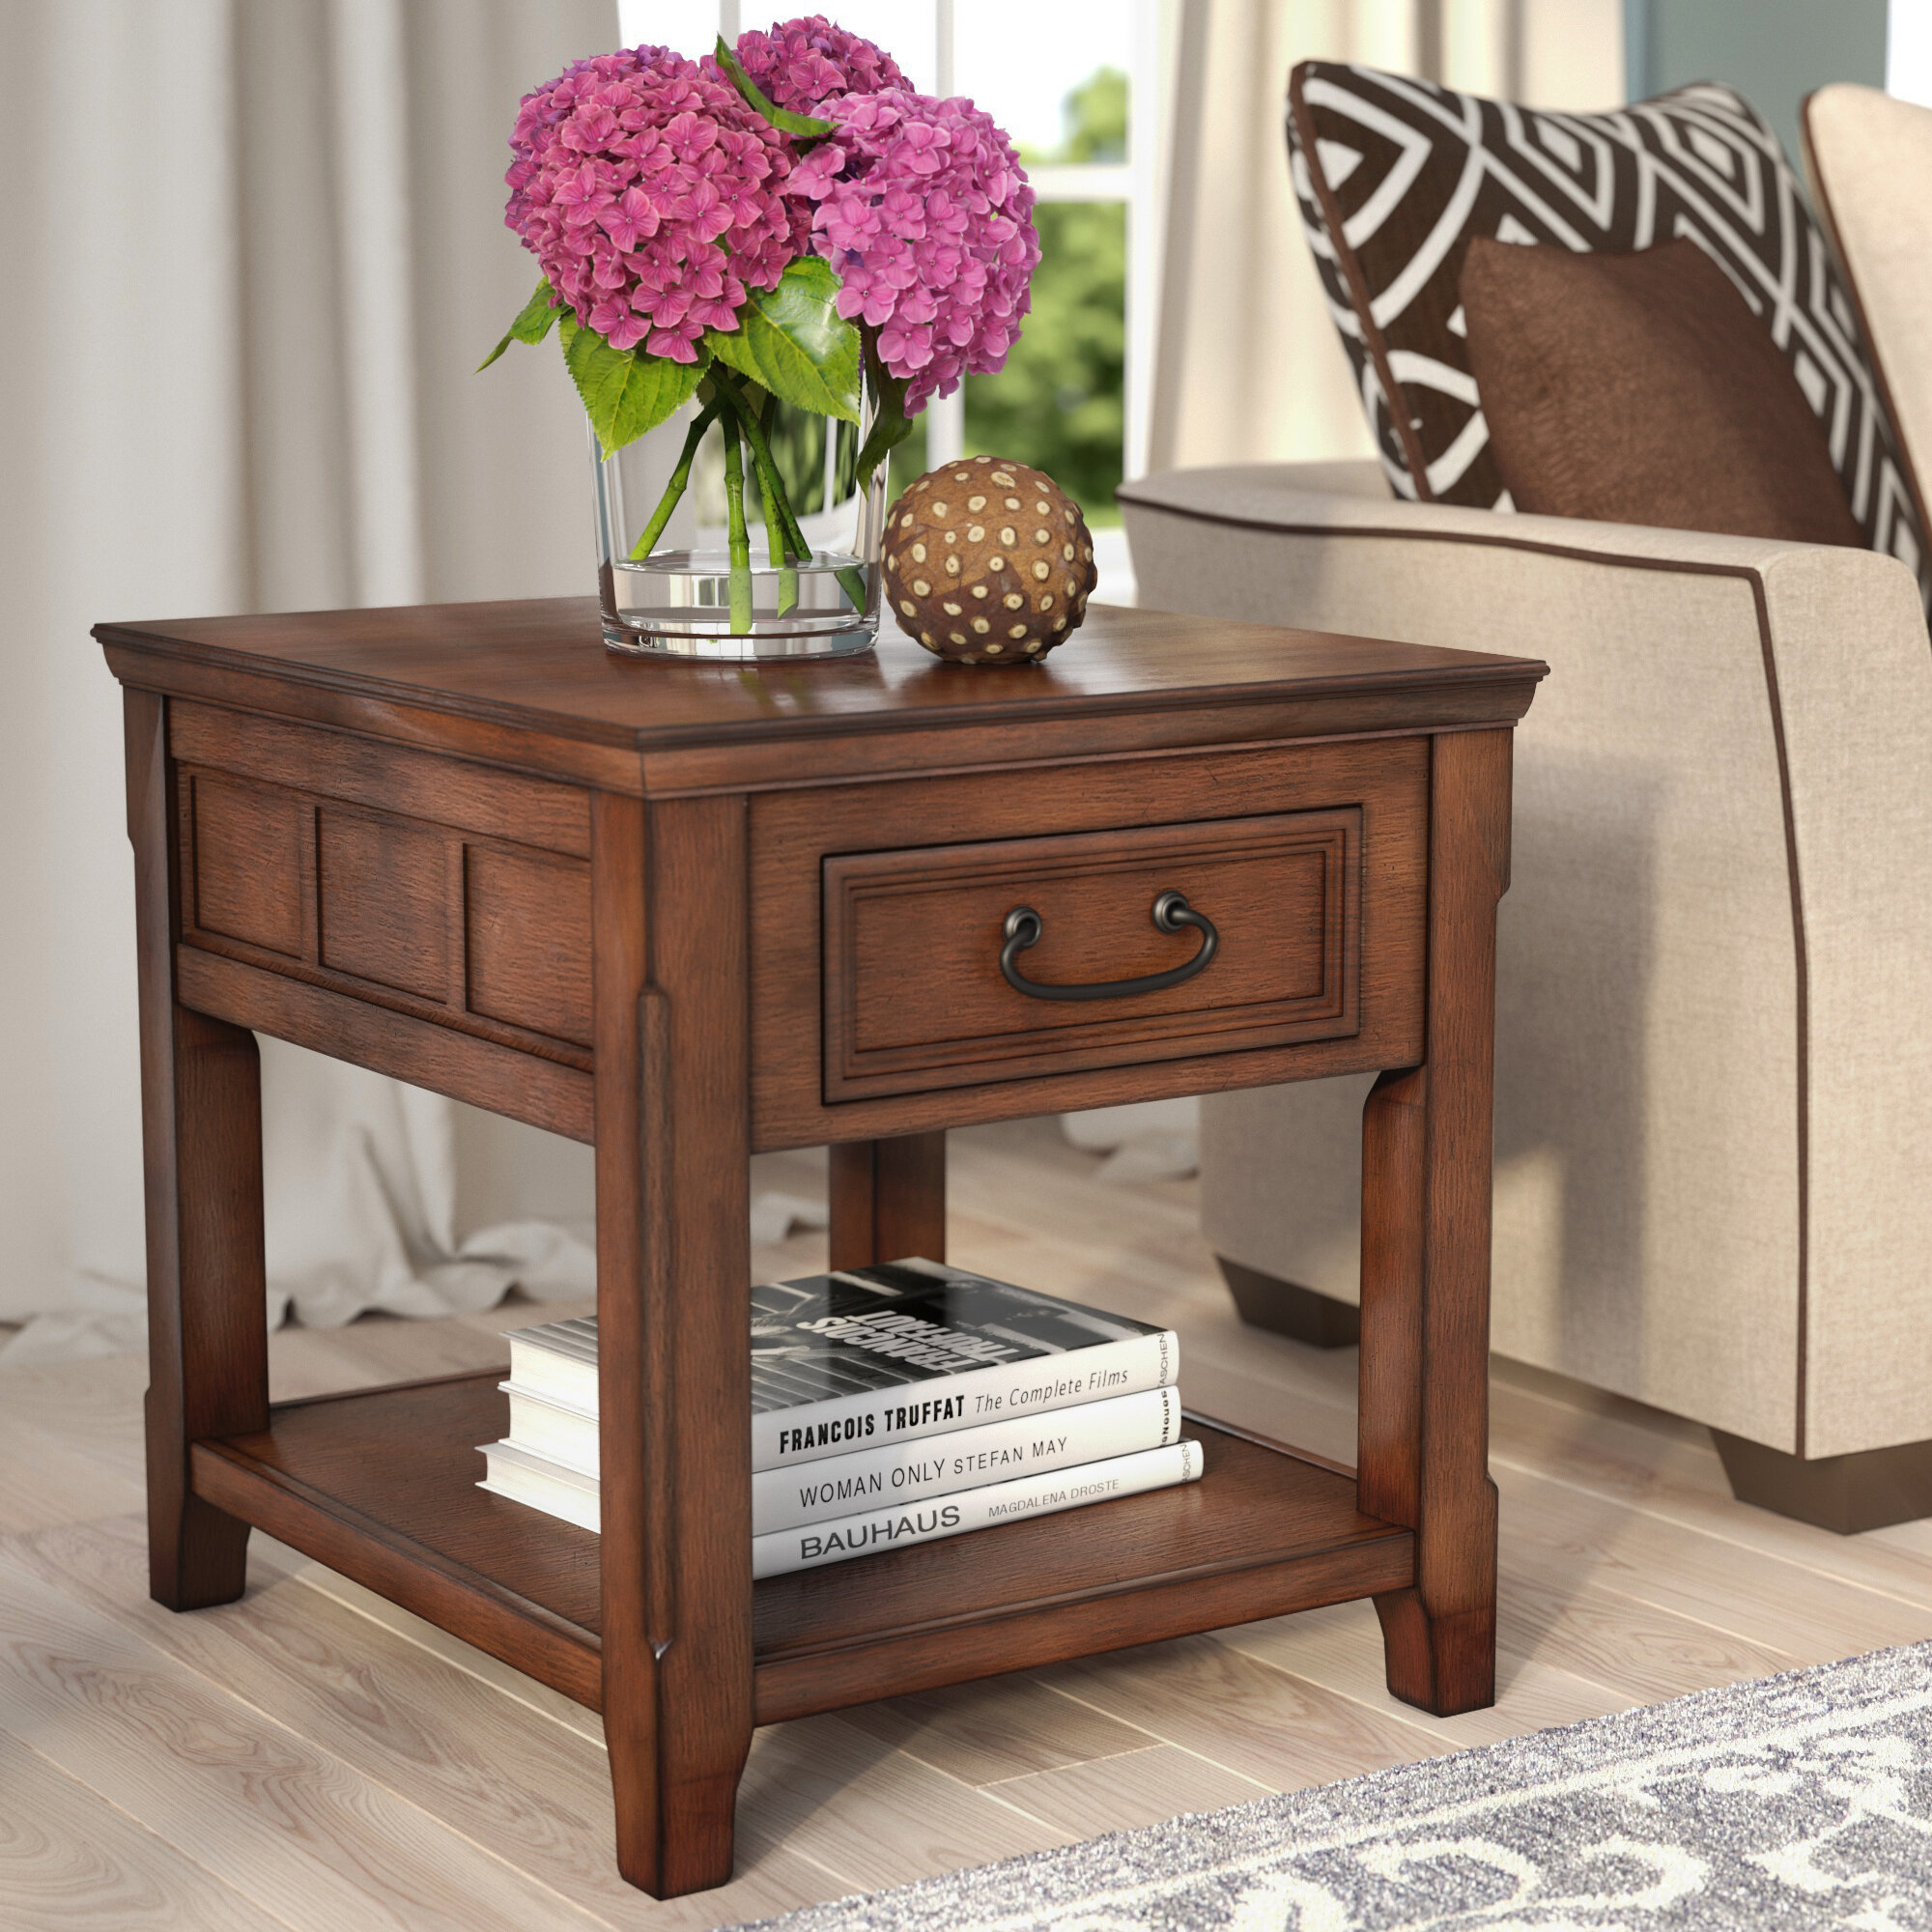 Table A Langer D Angle darby home co mathis end table with storage & reviews | wayfair